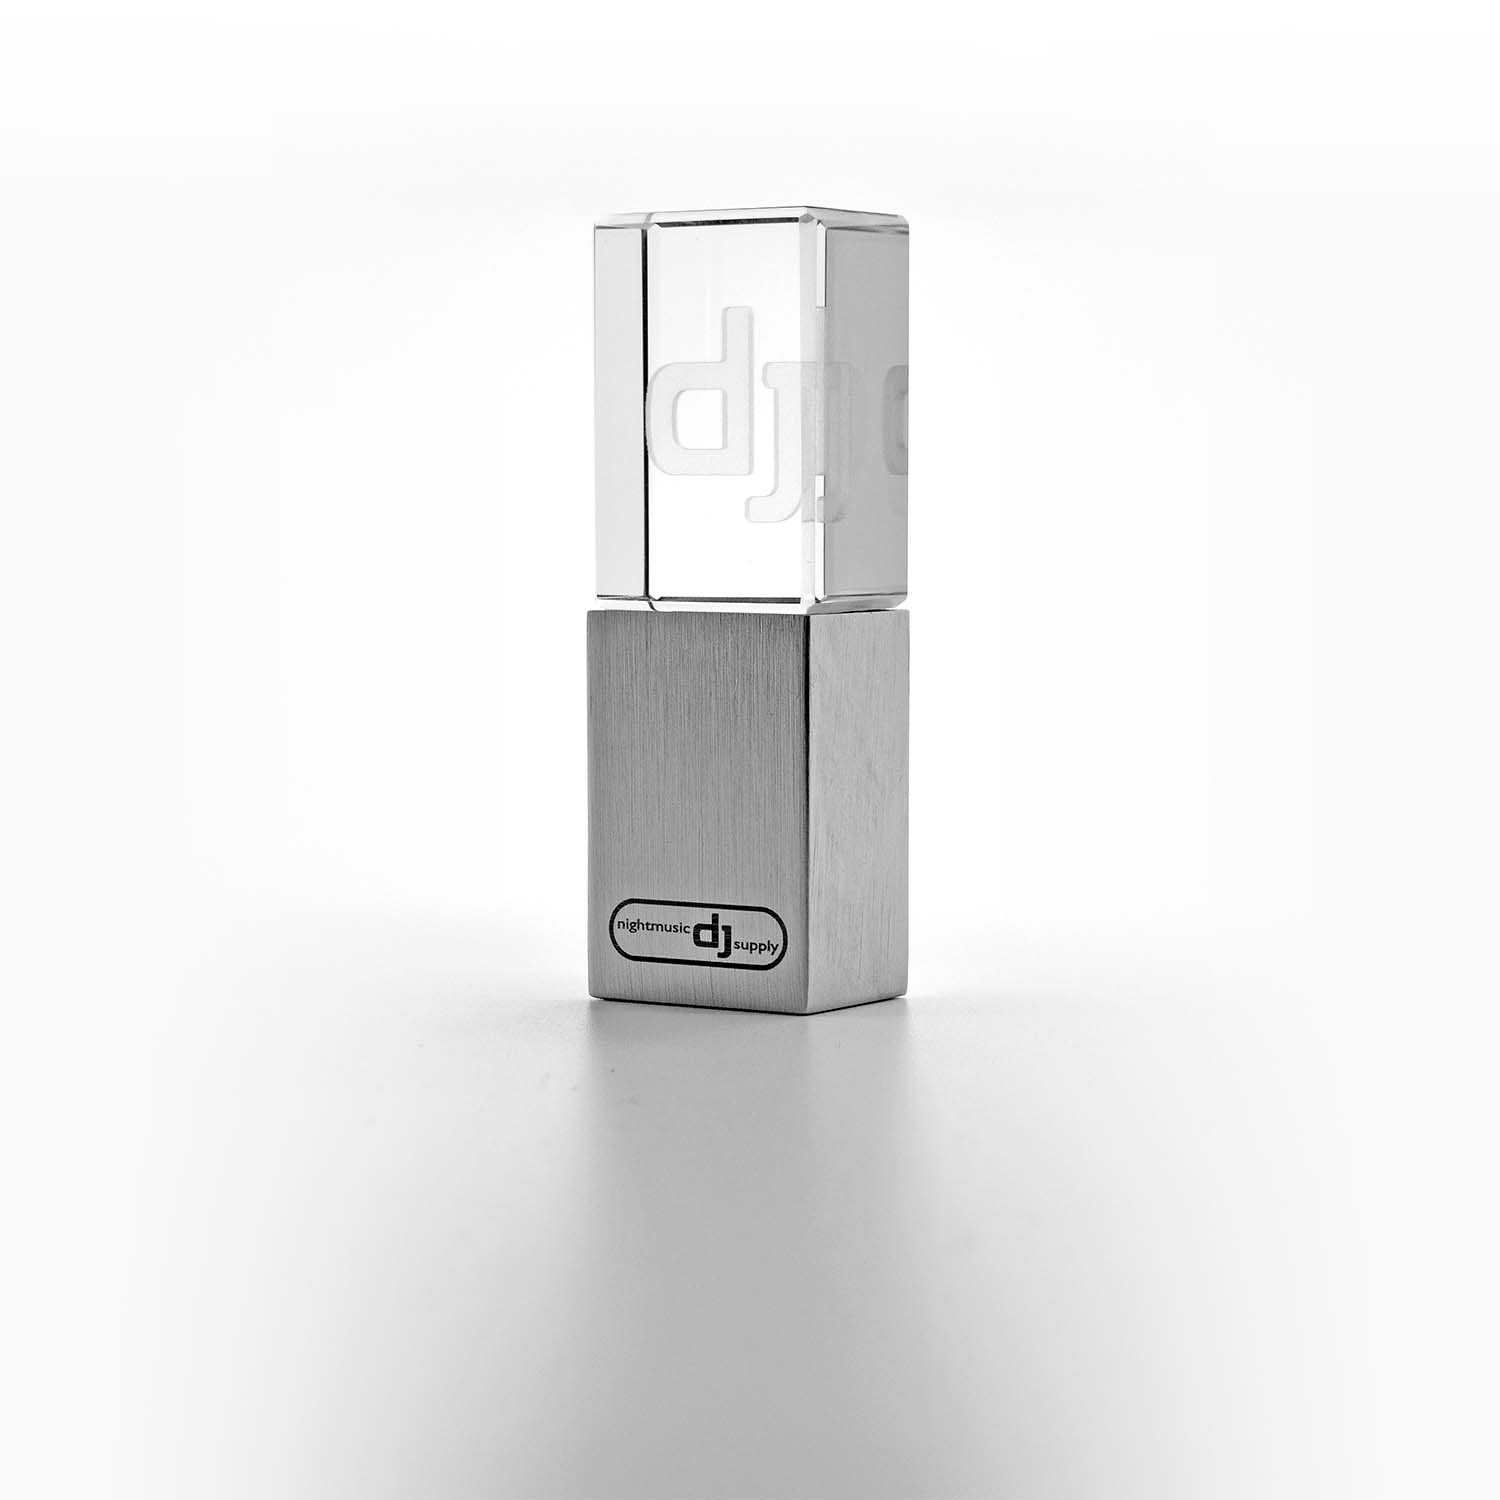 Premium Crystal DJ Stick - USB 3.0 Flash Drive